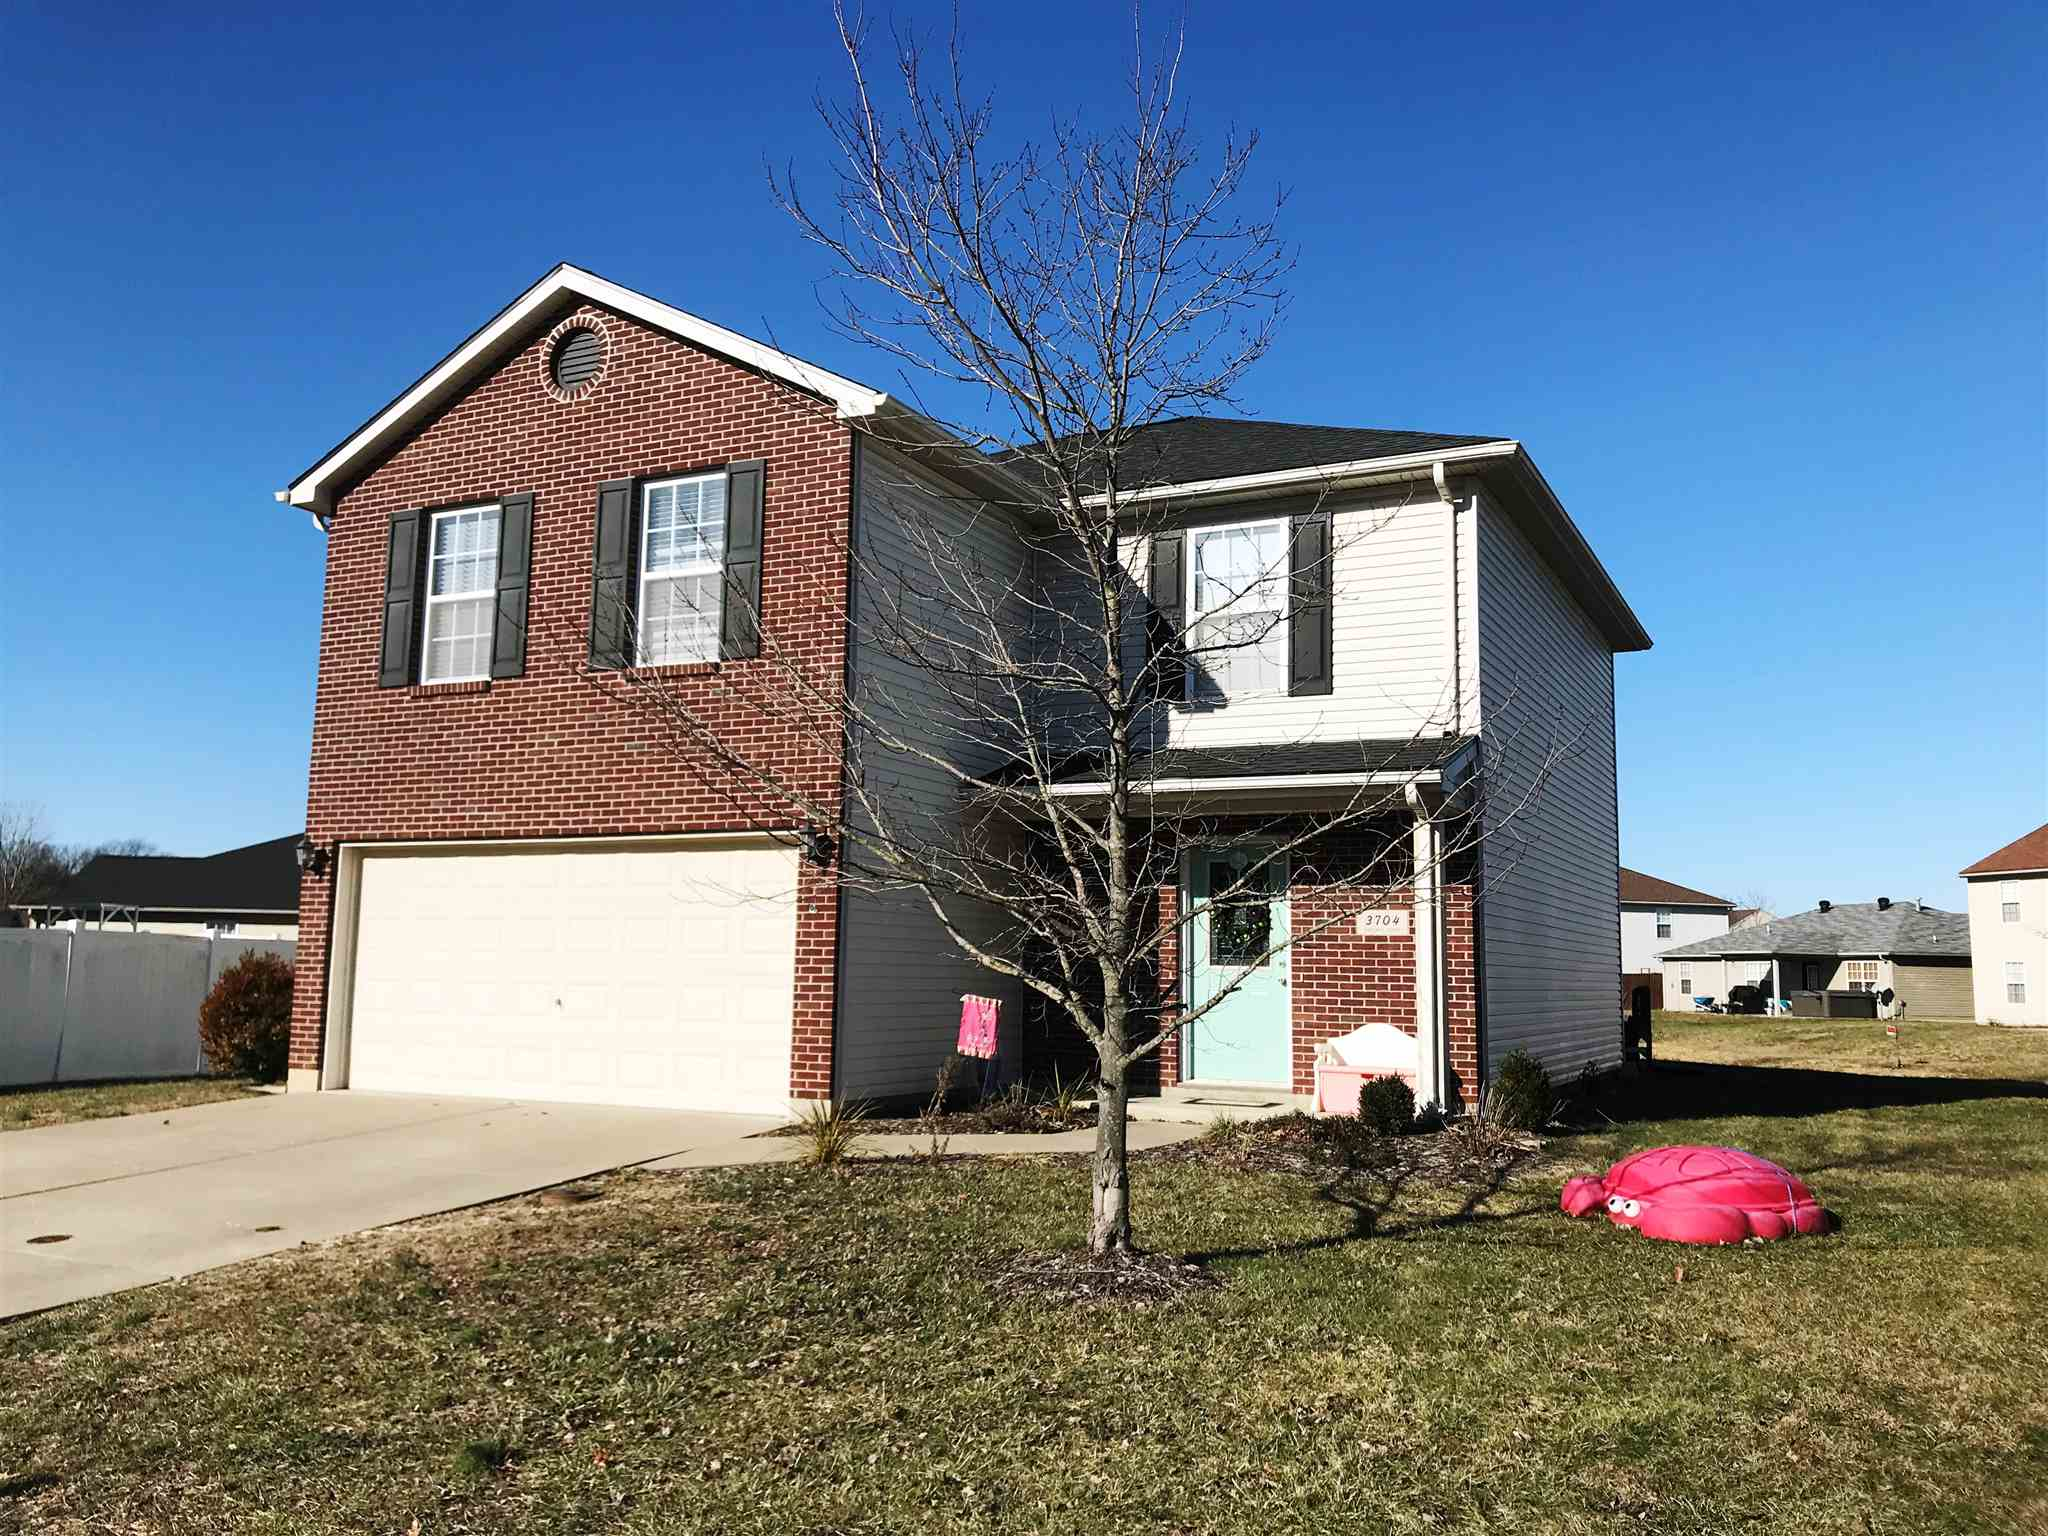 3704 Harvard Ct. Court, Evansville, IN 47711